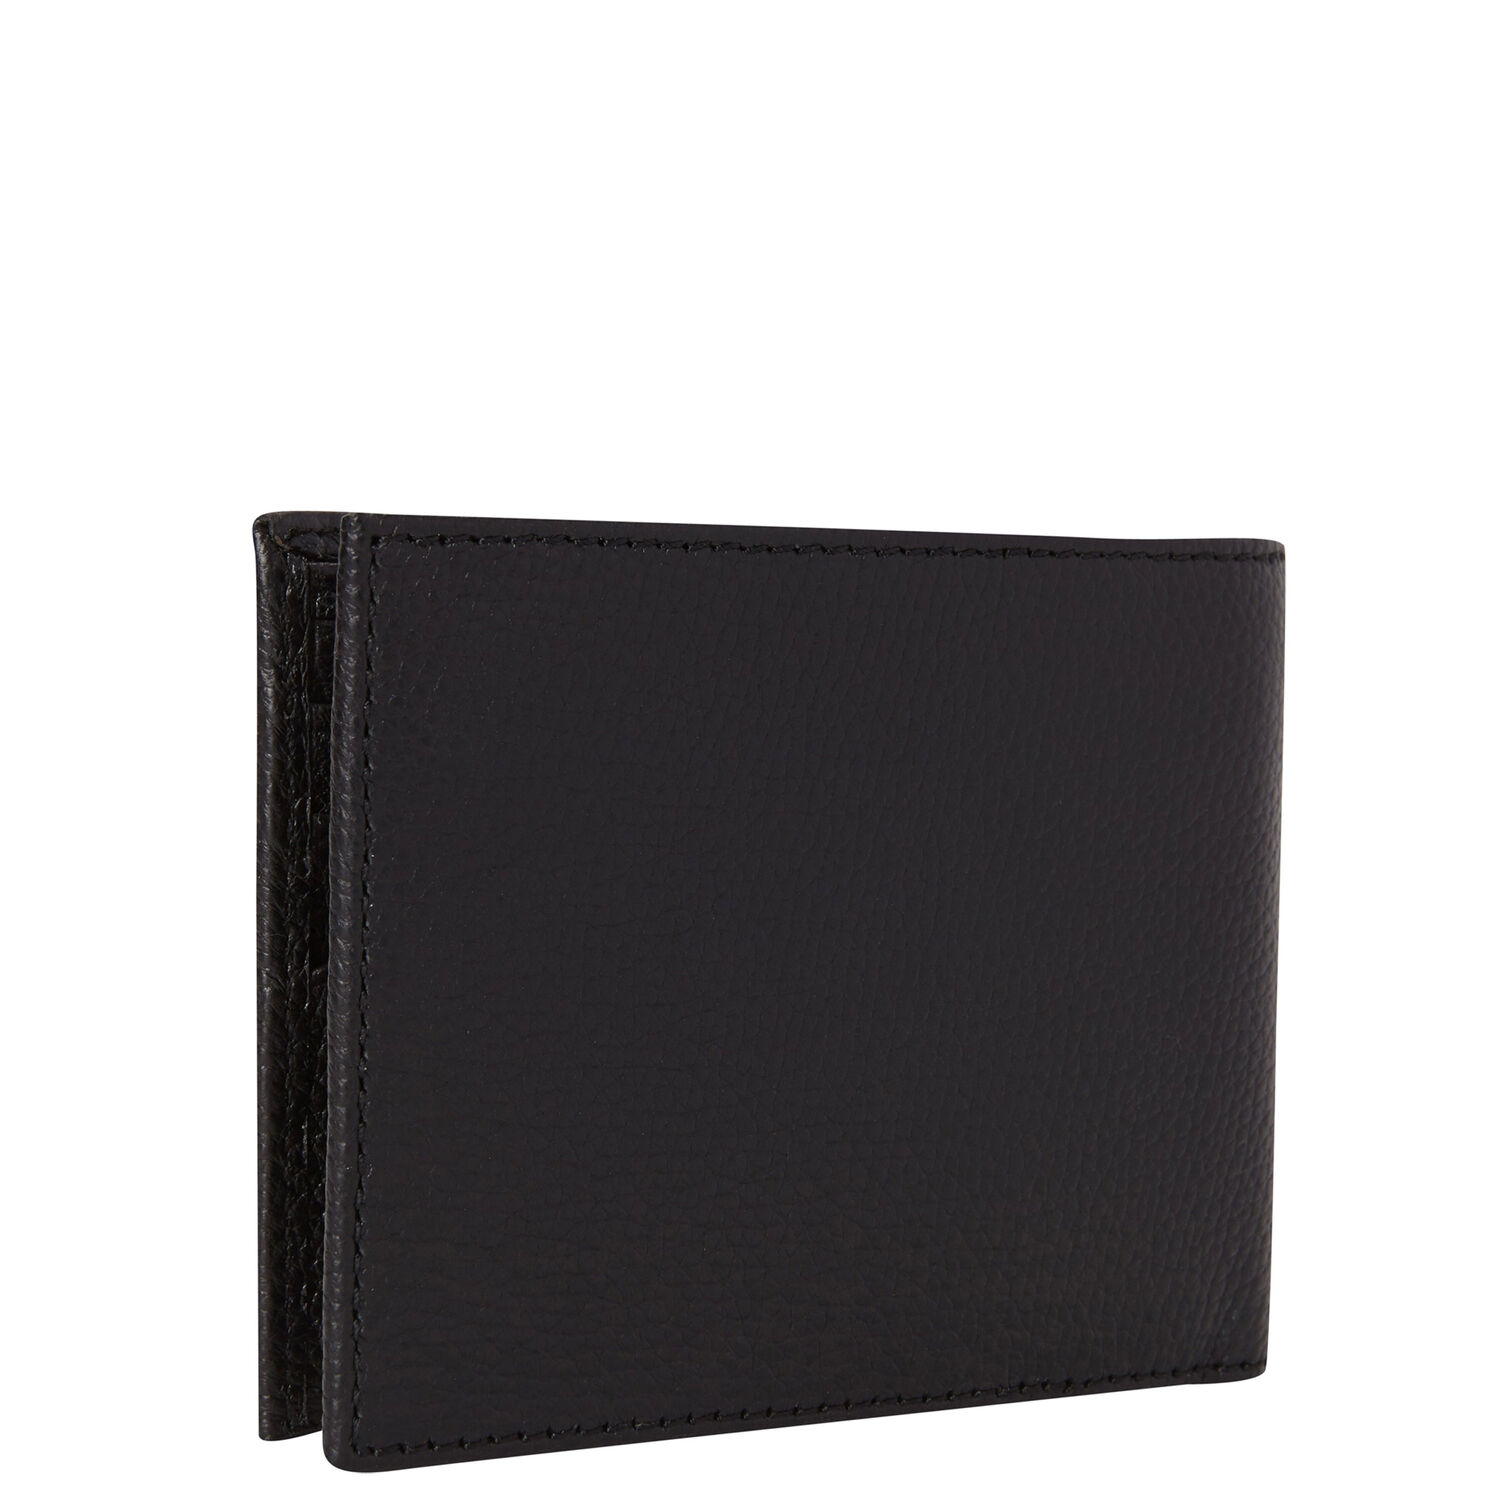 cf68e58fed5 Samsonite Mens Leather 2 Compartment Wallet in the color Black.